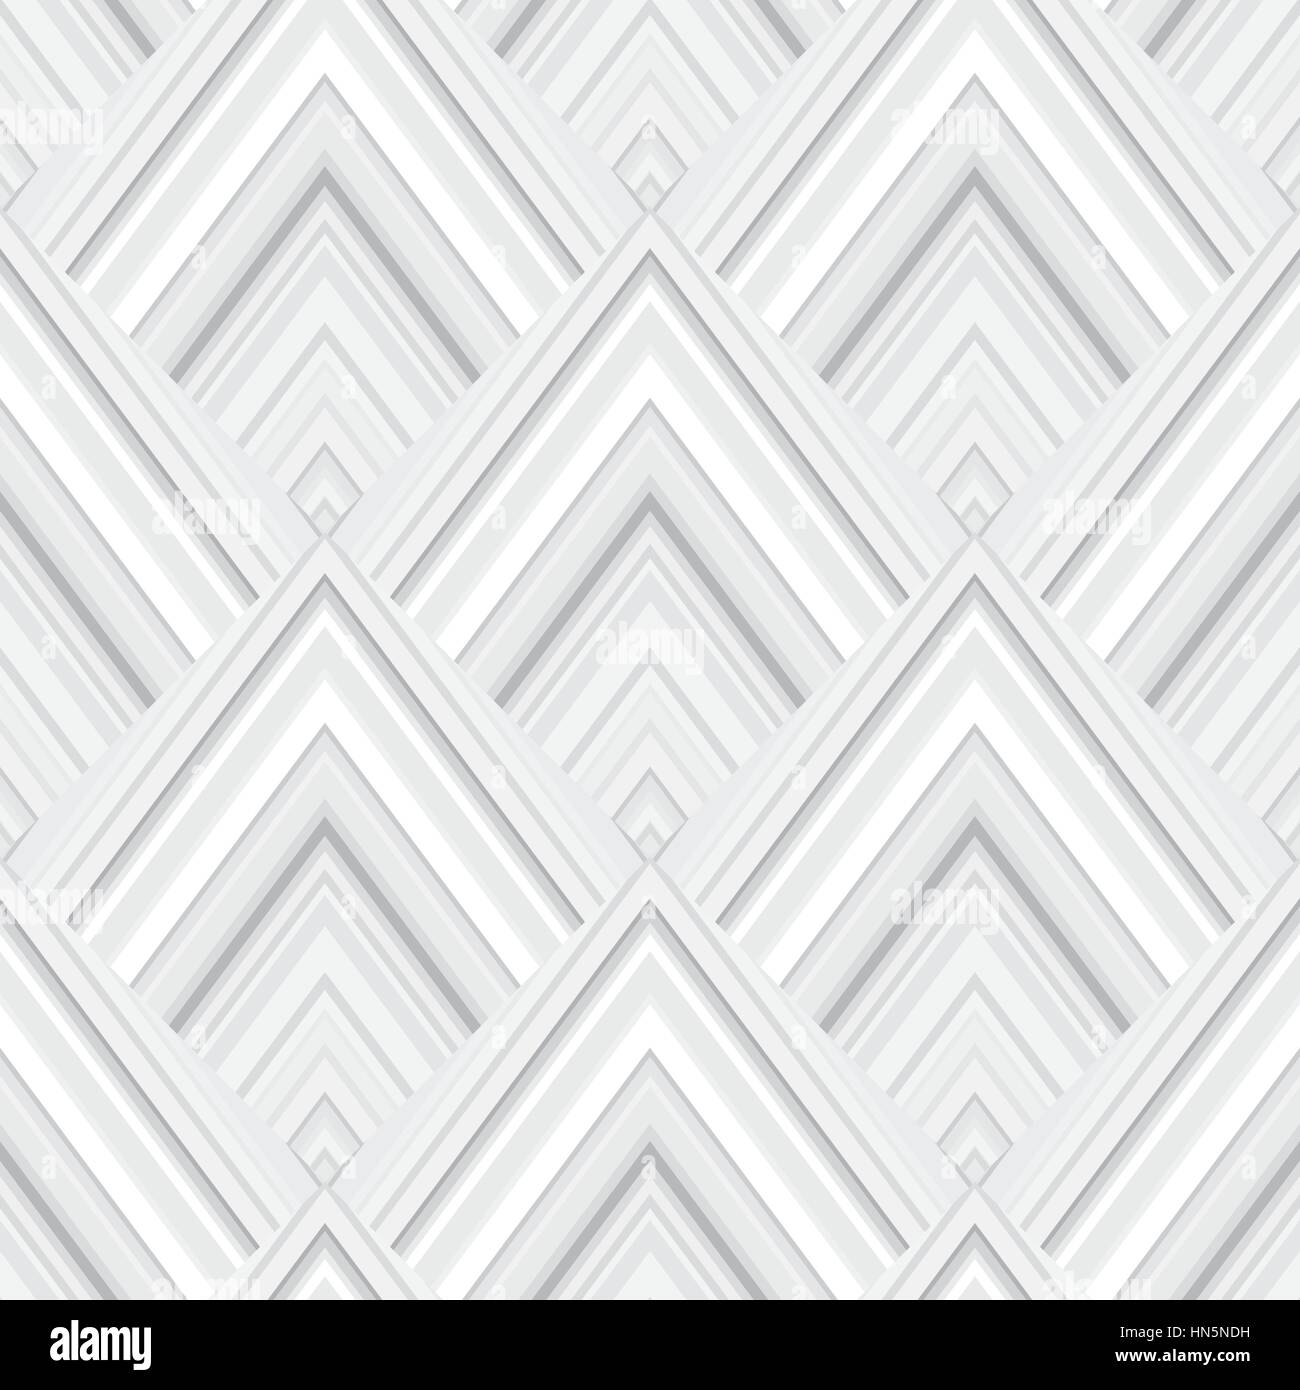 Abstract geometric pattern  Square shape abstract decorative